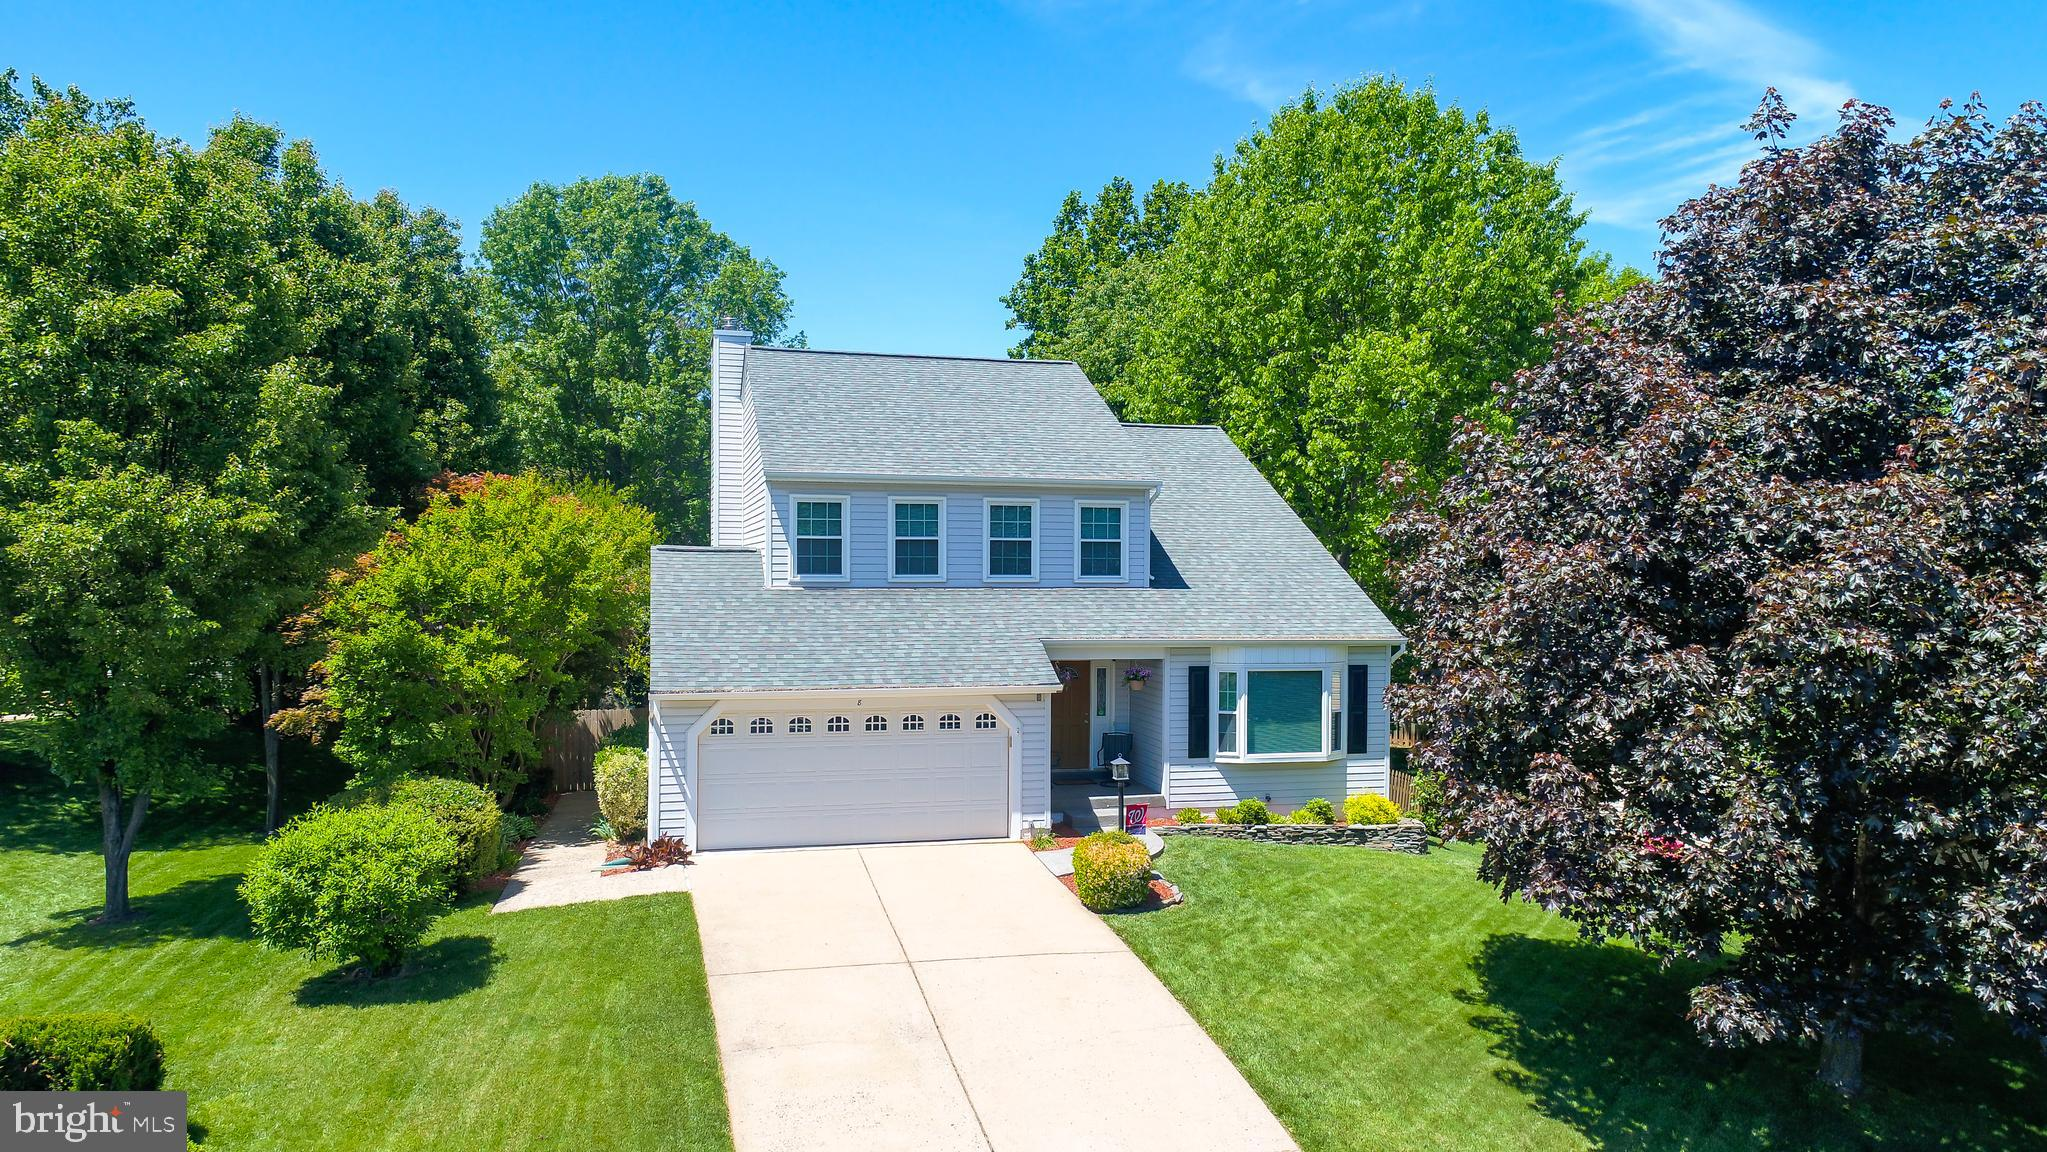 Welcome home! This magnificent 4 bedroom/2 full bath/2 half bath beauty situated on one of the best